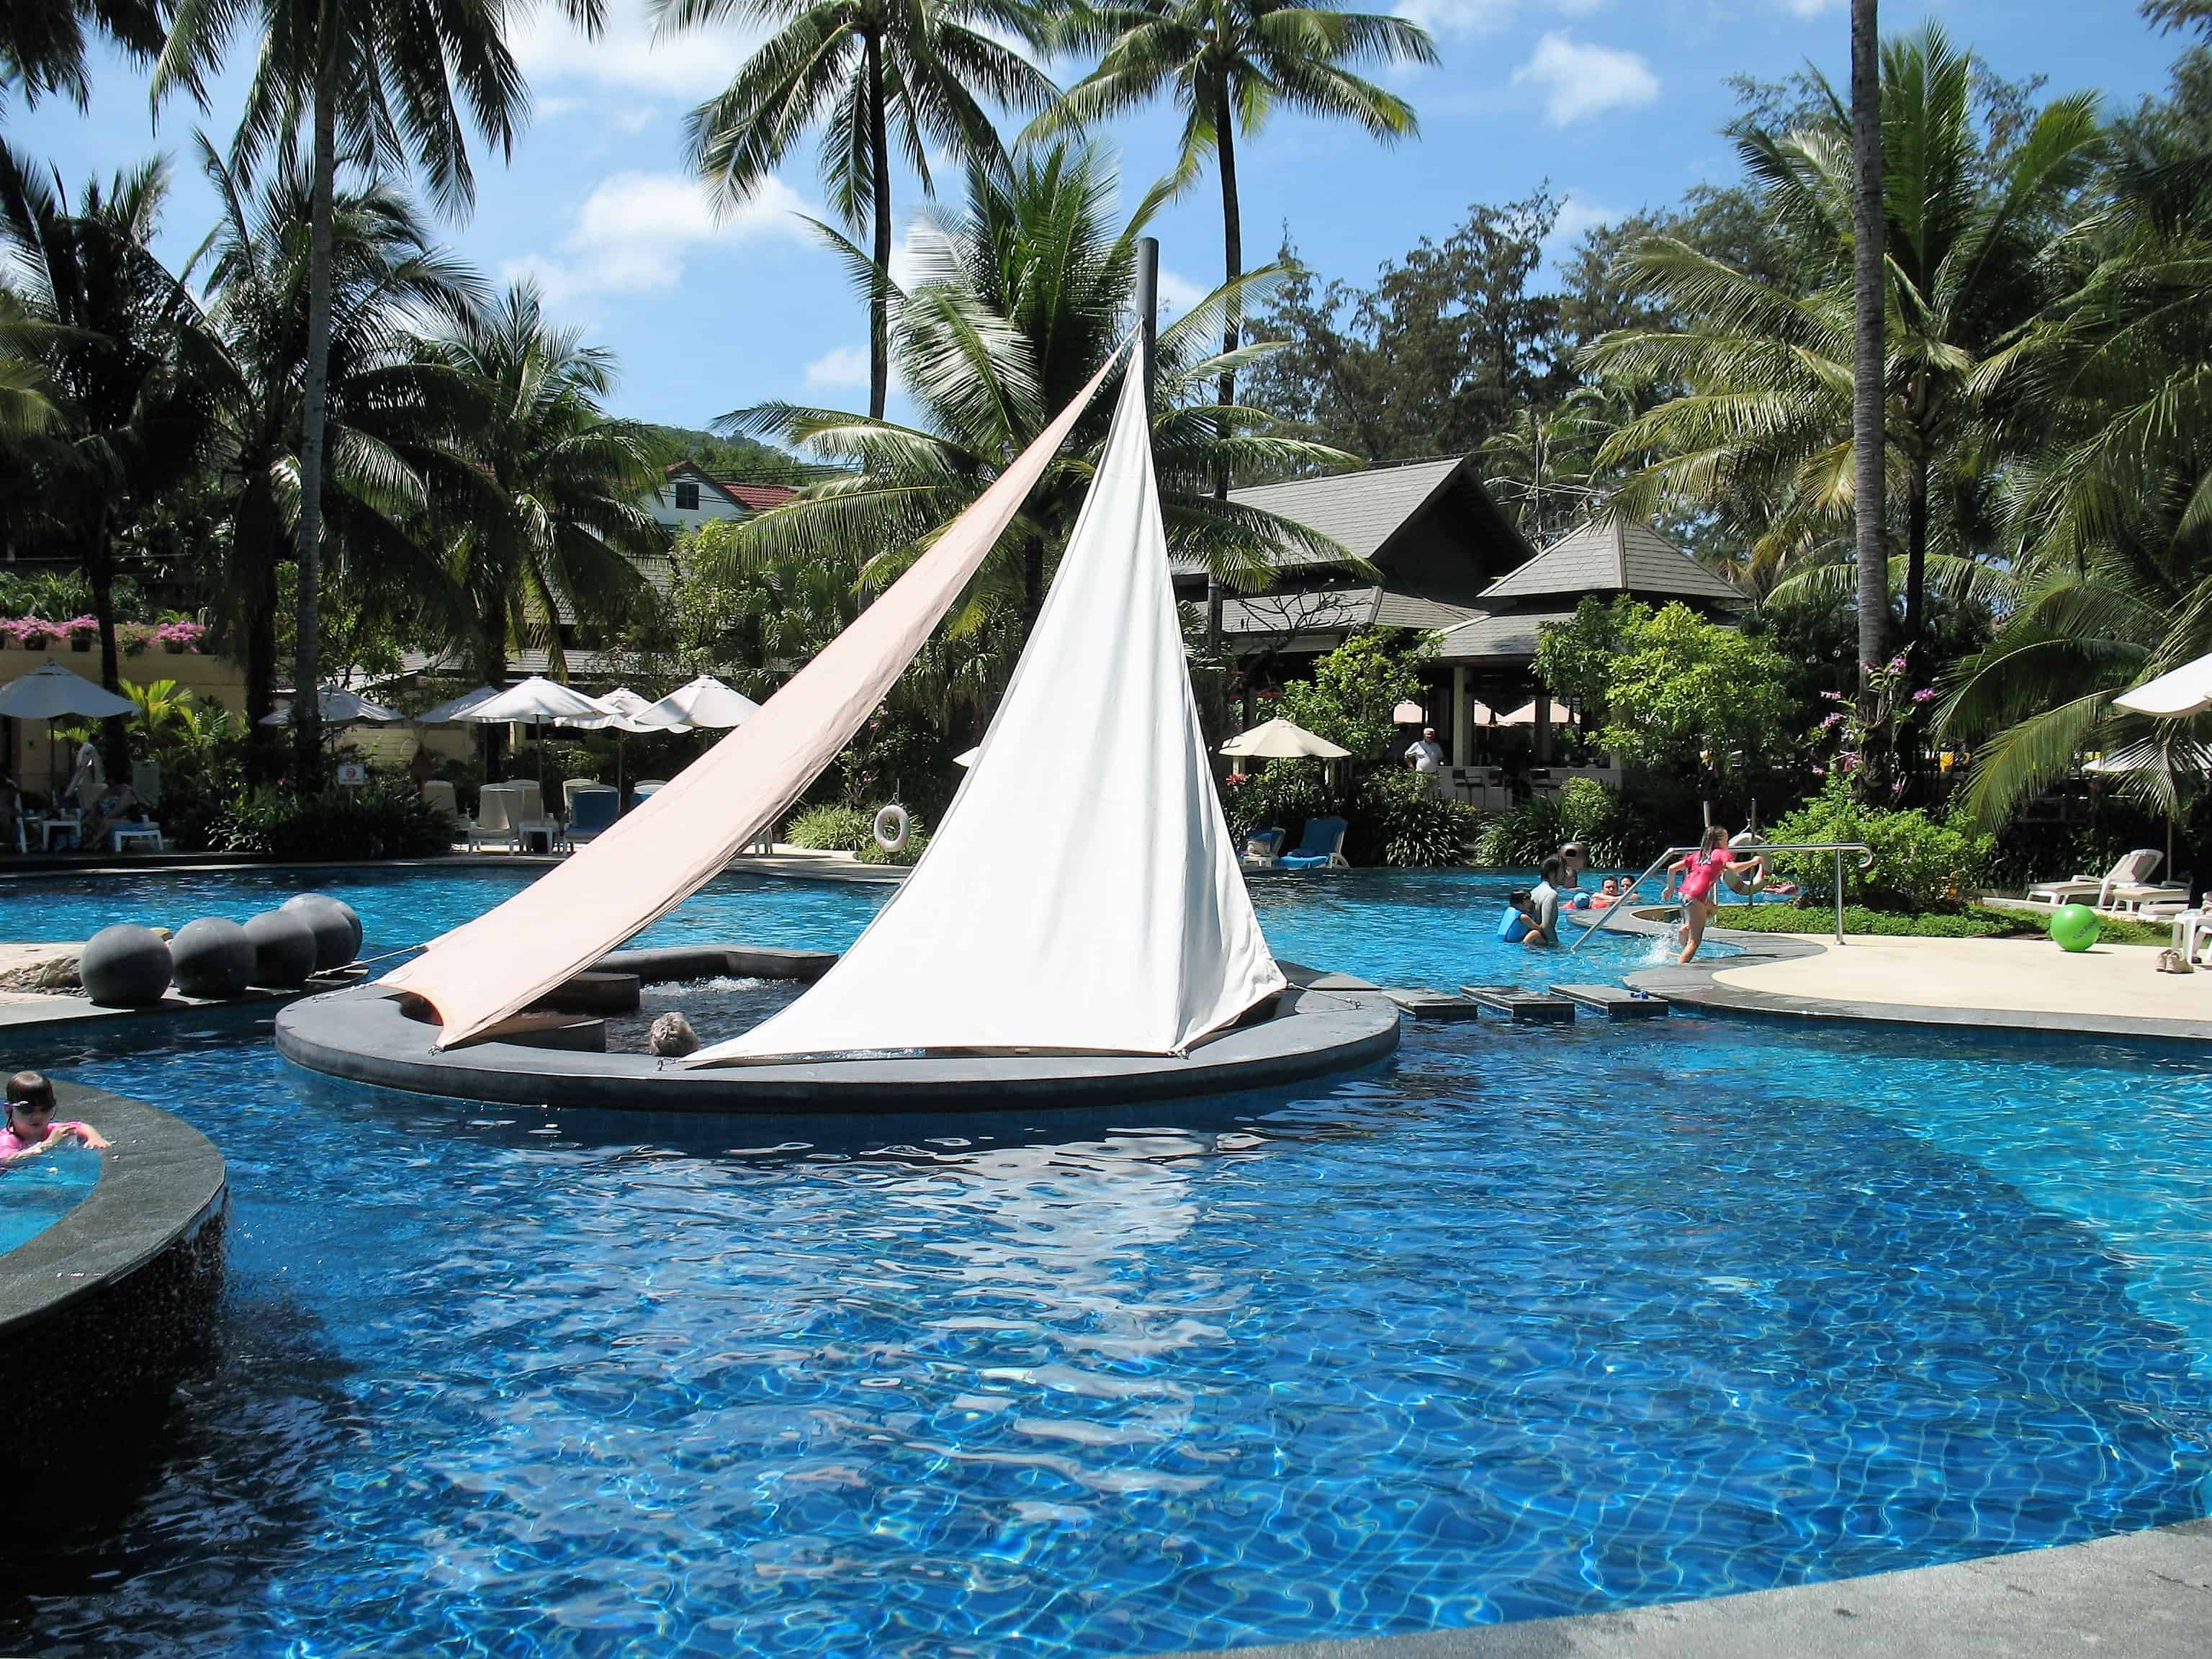 Why Holiday Inn Phuket is excellent for families